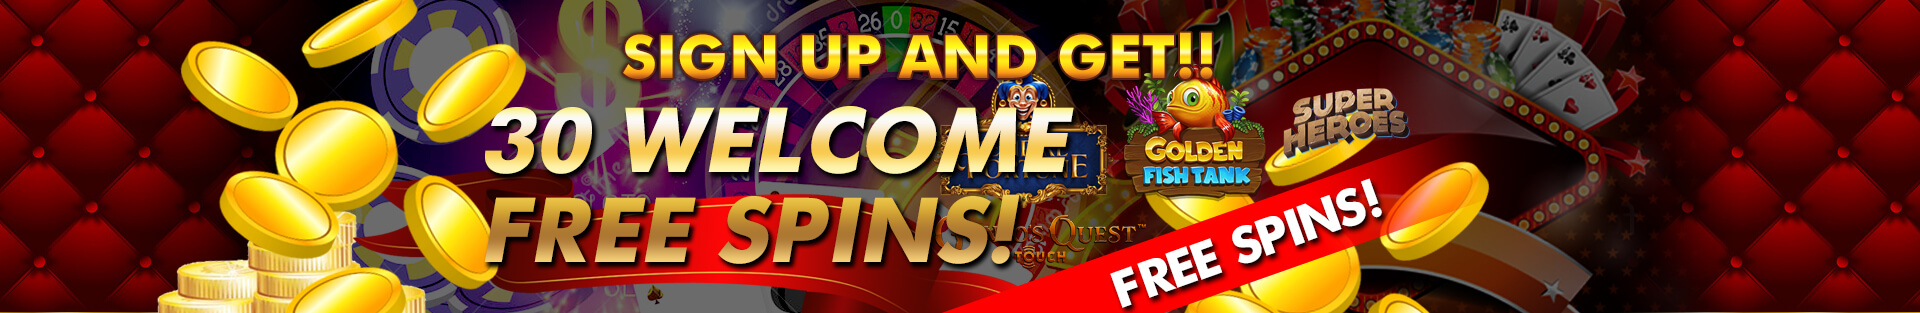 SIGN UP AND GET 30 WELCOME FREE SPINS!